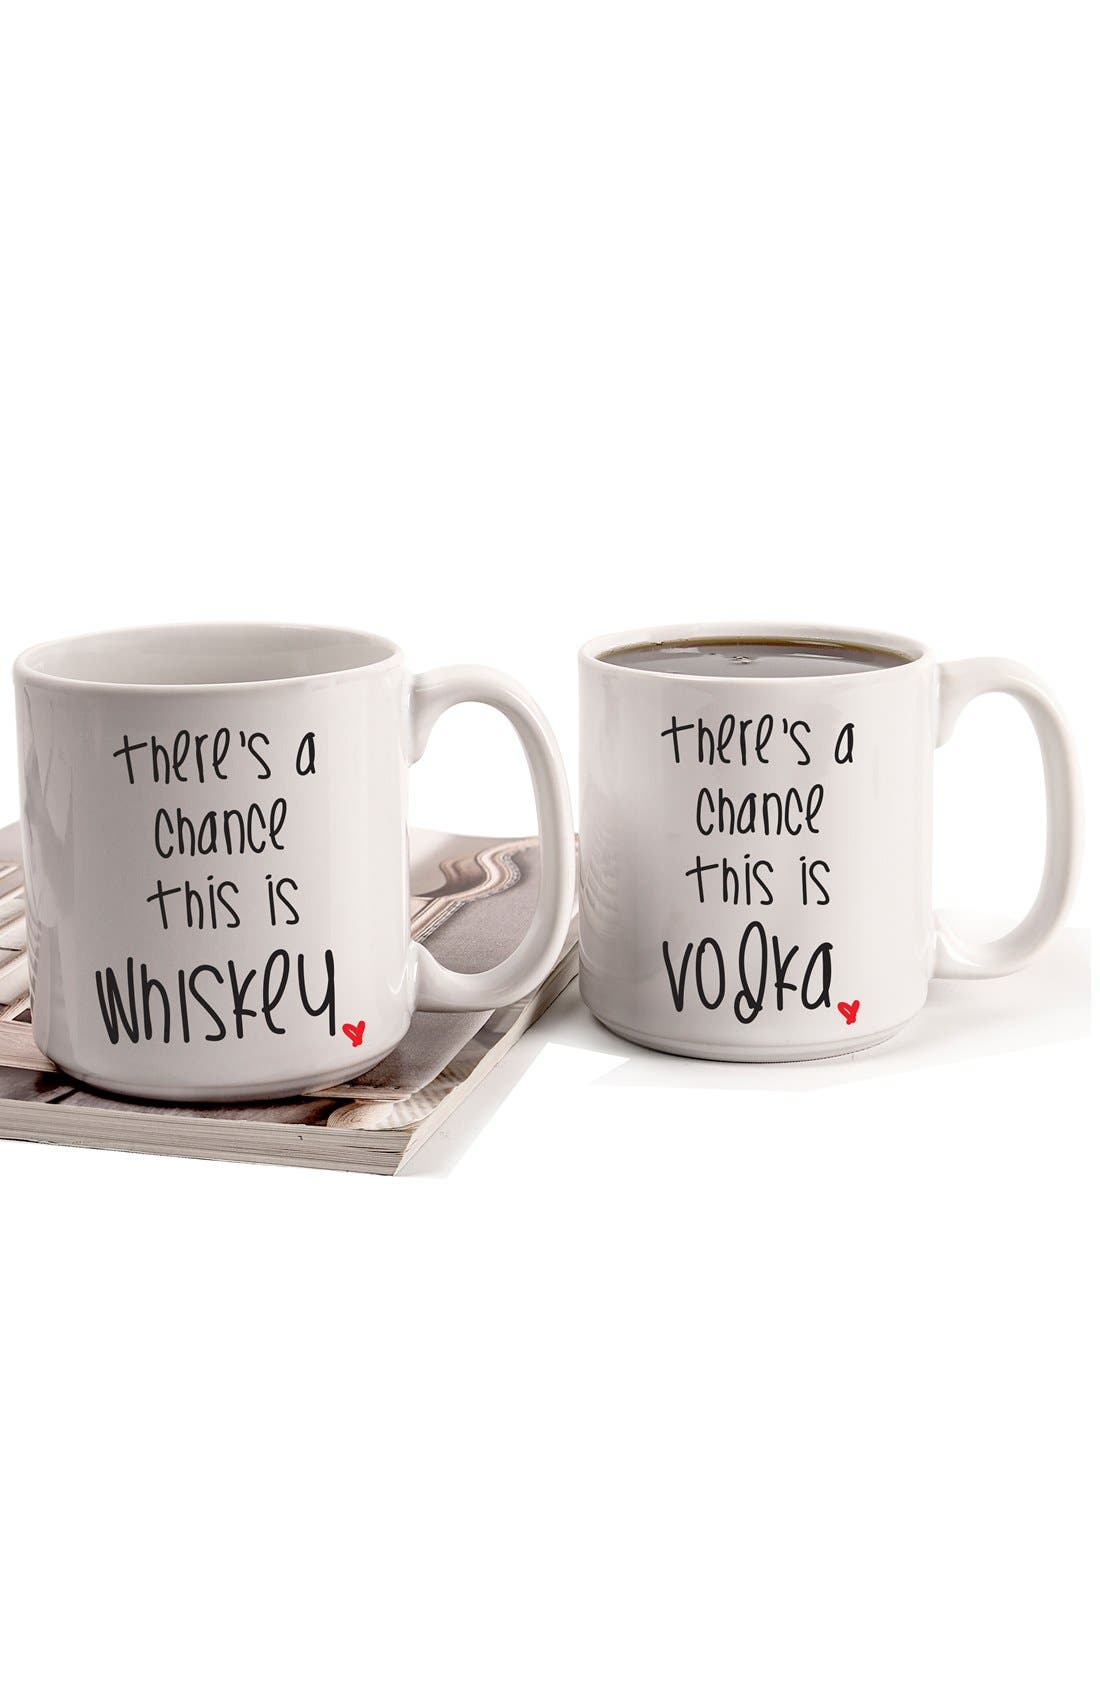 'There's a Chance' Ceramic Coffee Mugs,                             Alternate thumbnail 3, color,                             100